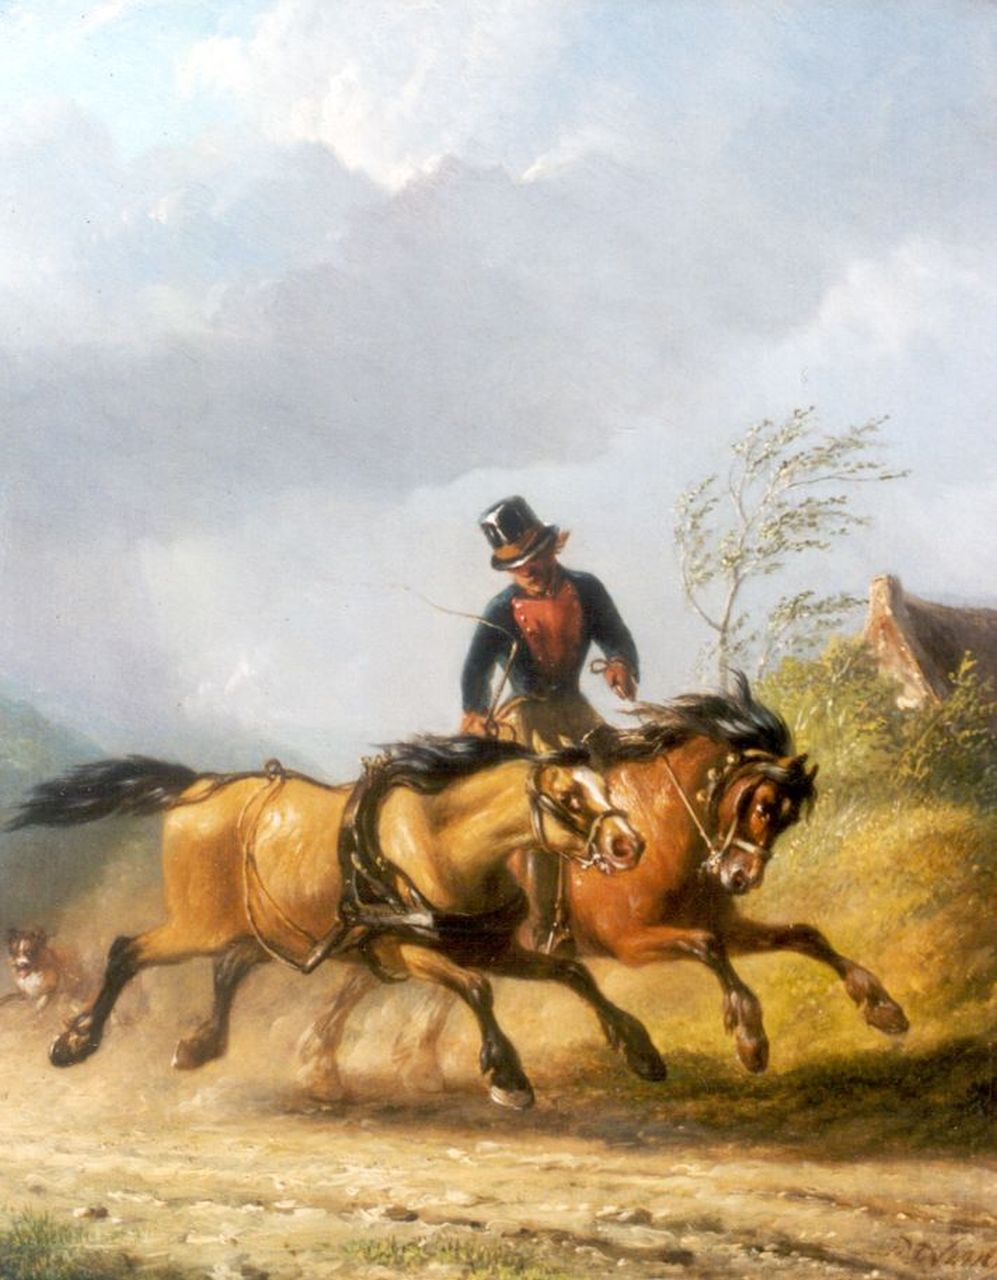 Os P.F. van | Pieter Frederik van Os, Untameable horse, oil on panel 30.0 x 24.5 cm, signed l.r.